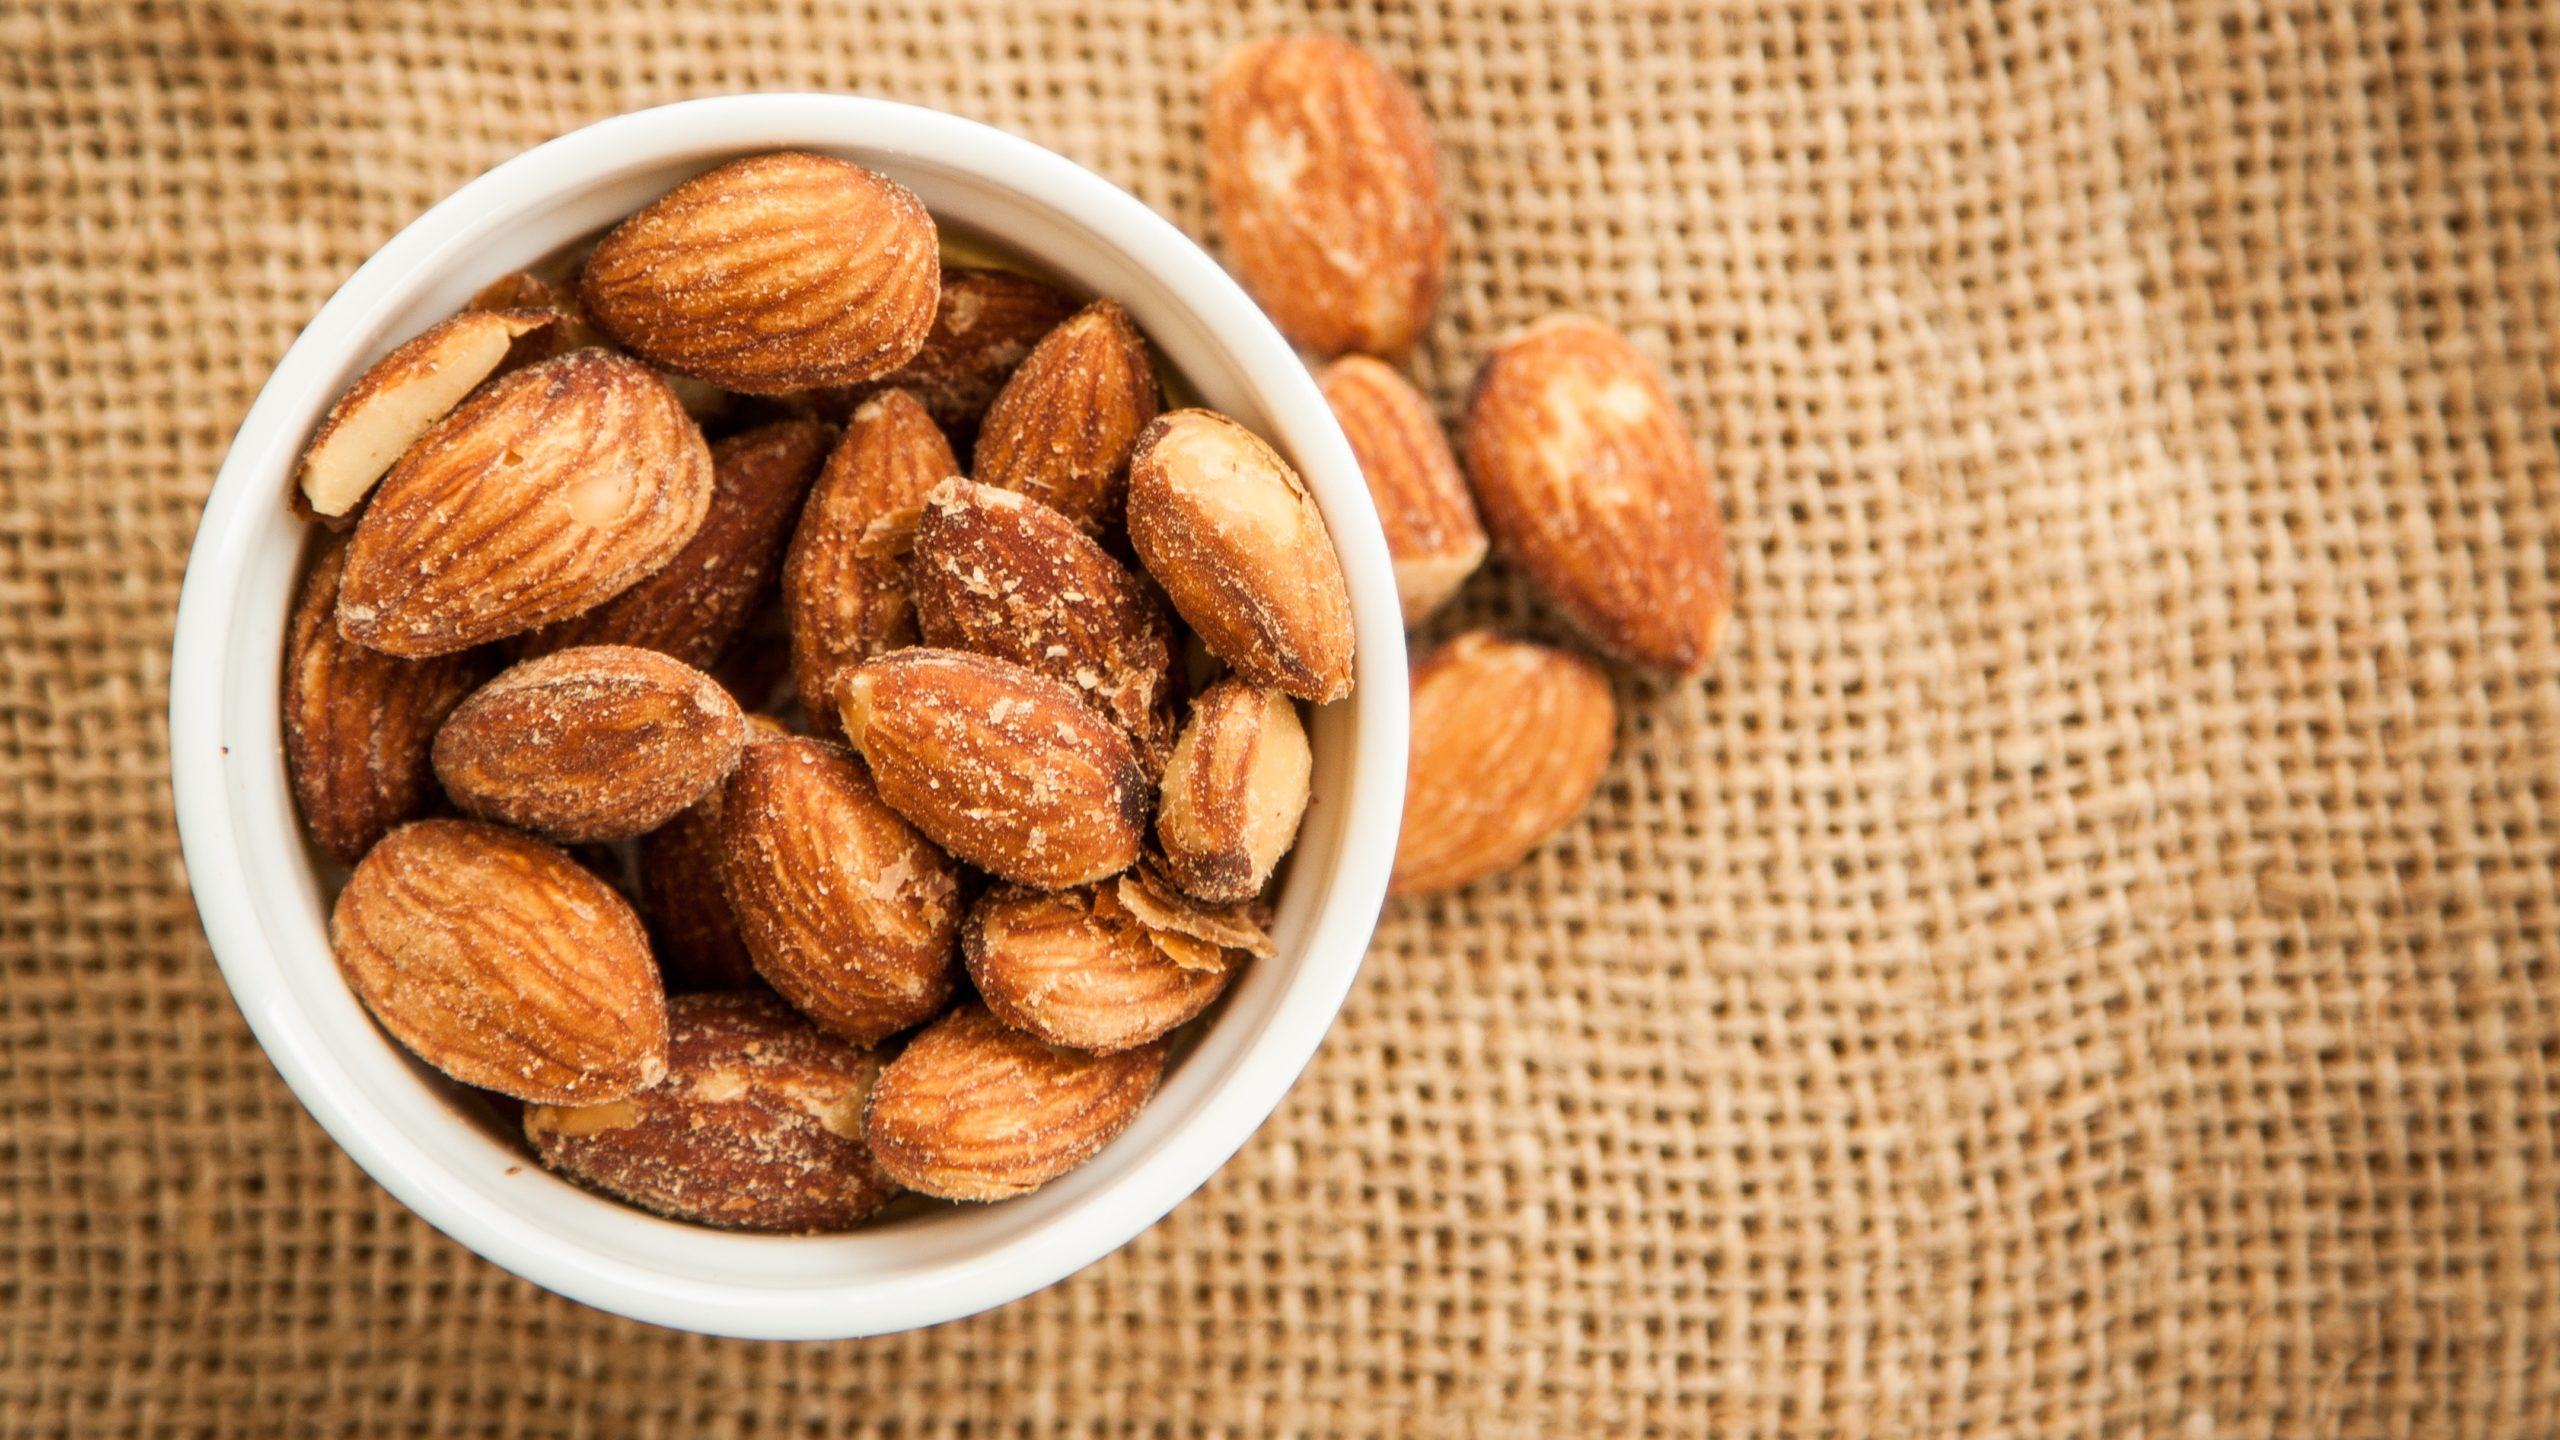 Close up Almonds with salted and Roasted in the white cup put on the sackcloth and wood floor, the great snack